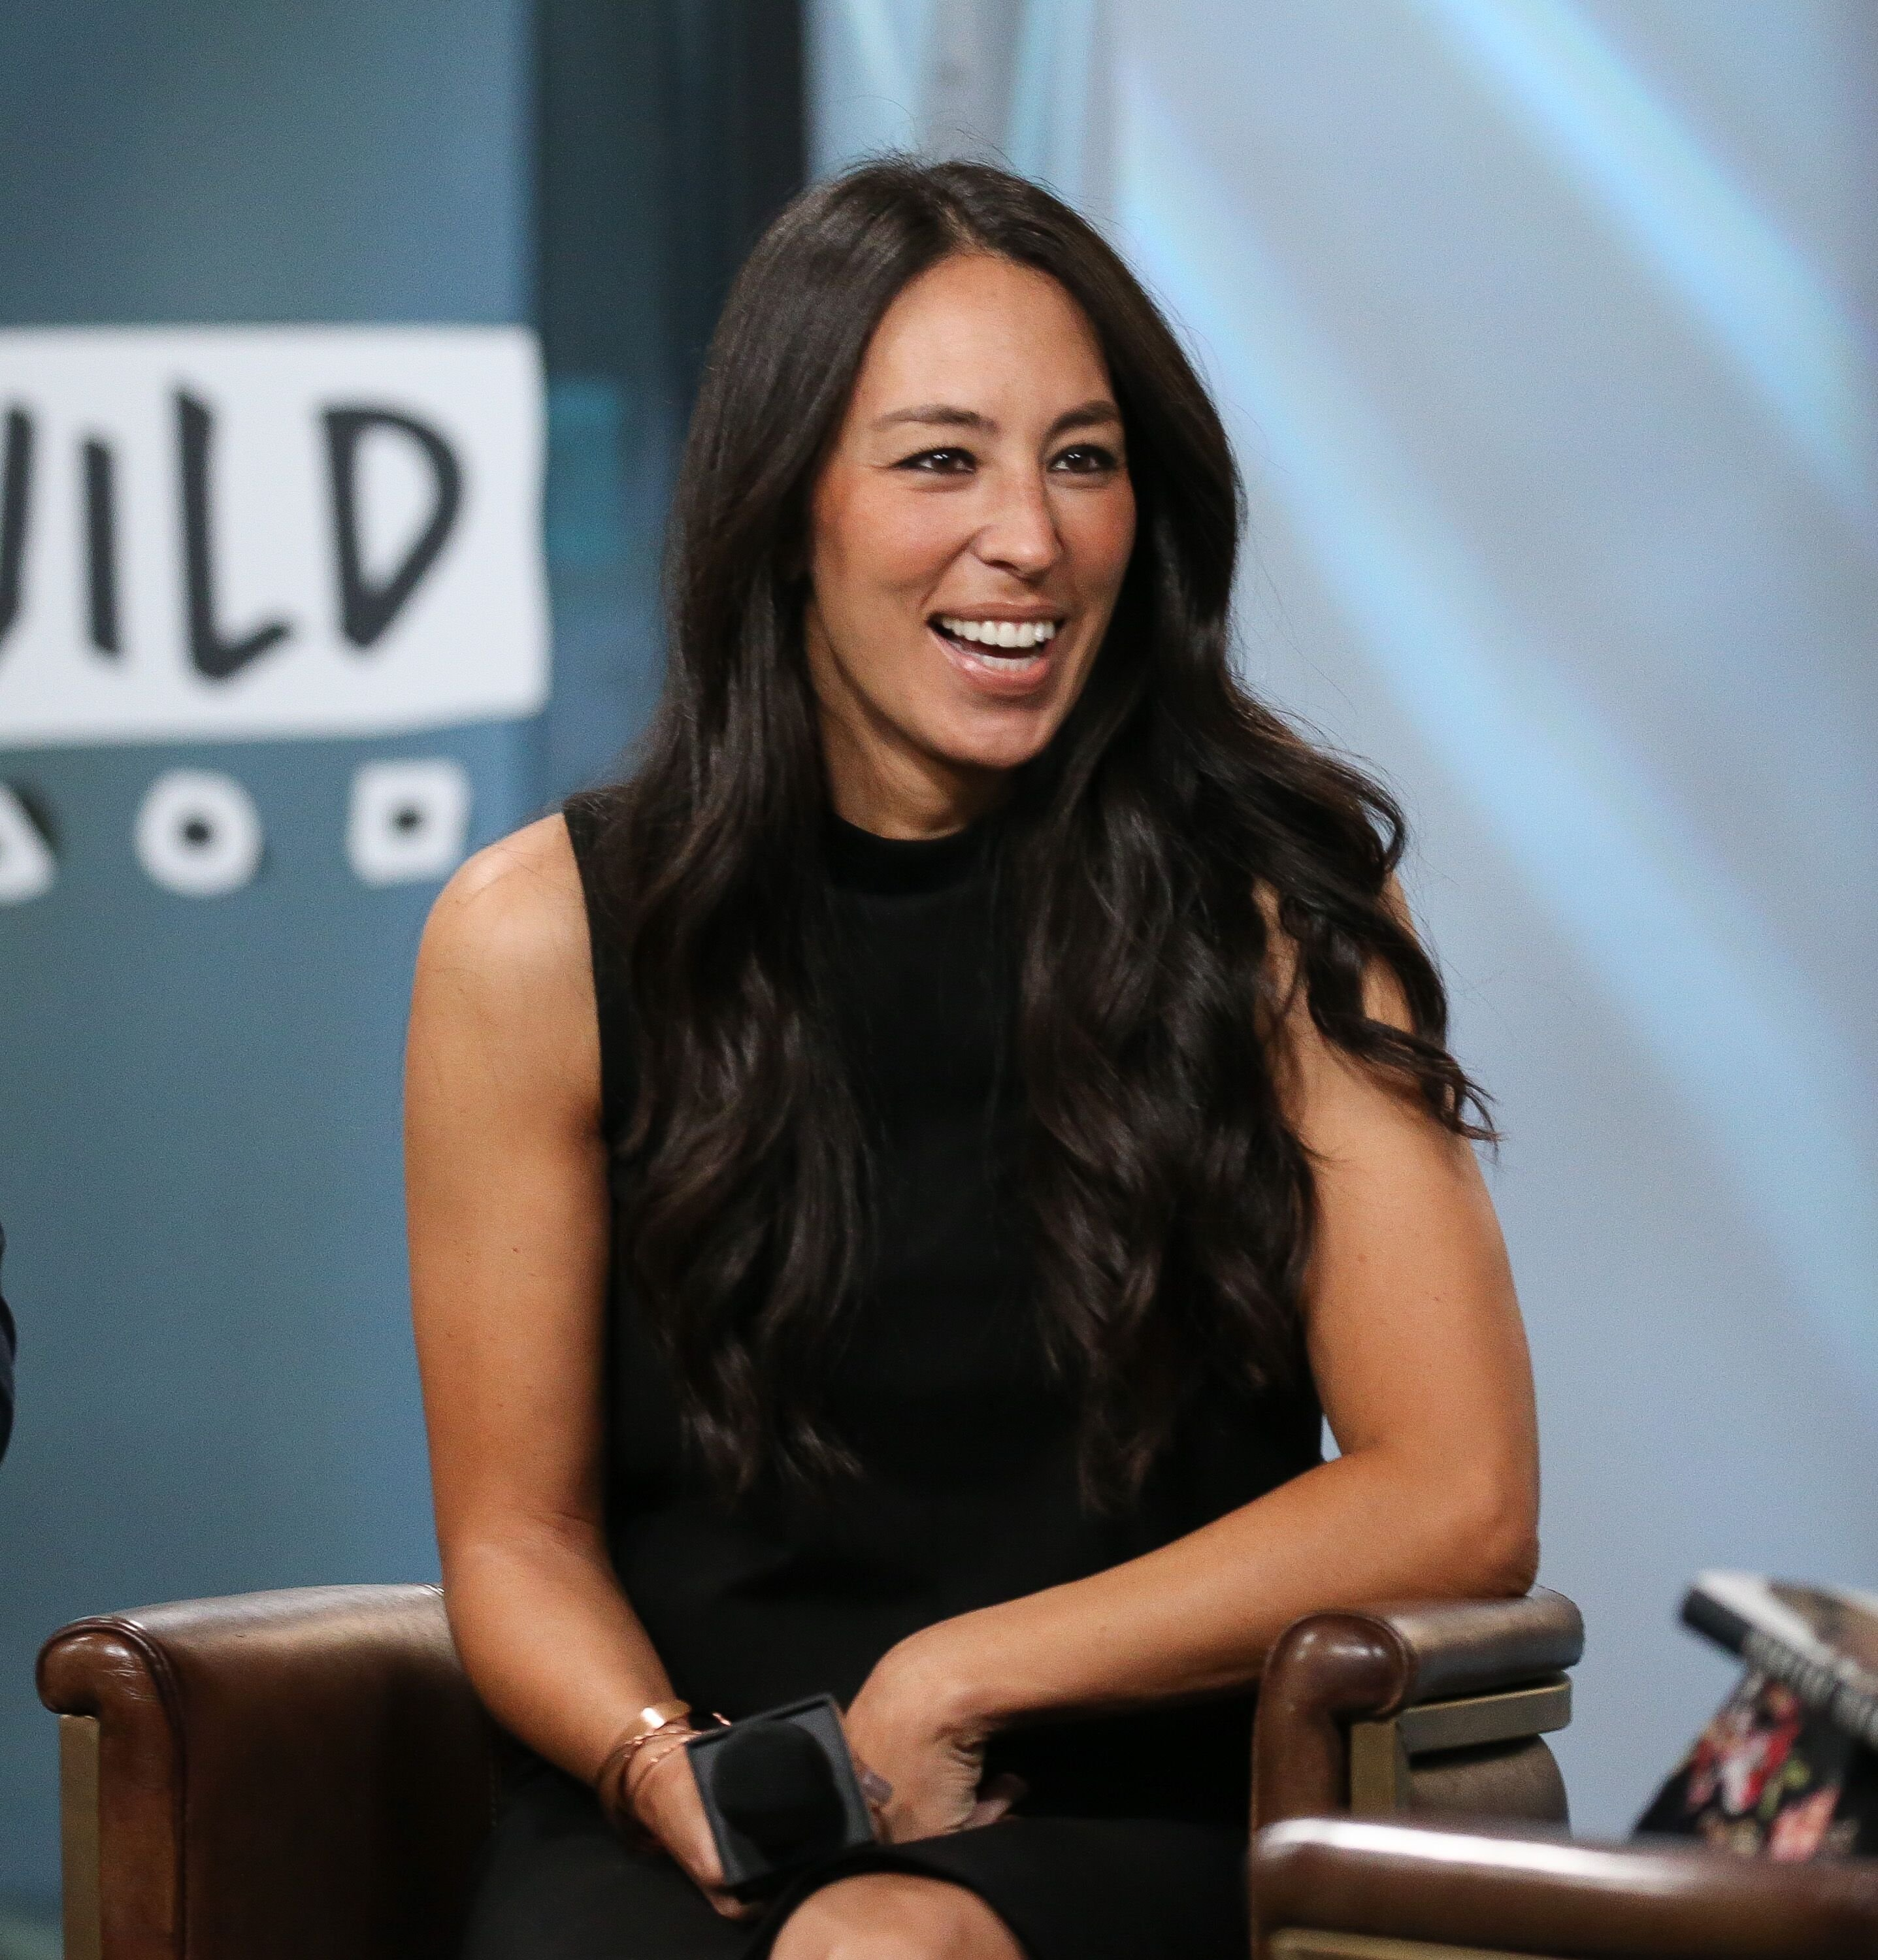 """Joanna Gaines discusses new book, """"Capital Gaines: Smart Things I Learned Doing Stupid Stuff"""" at Build Studio 